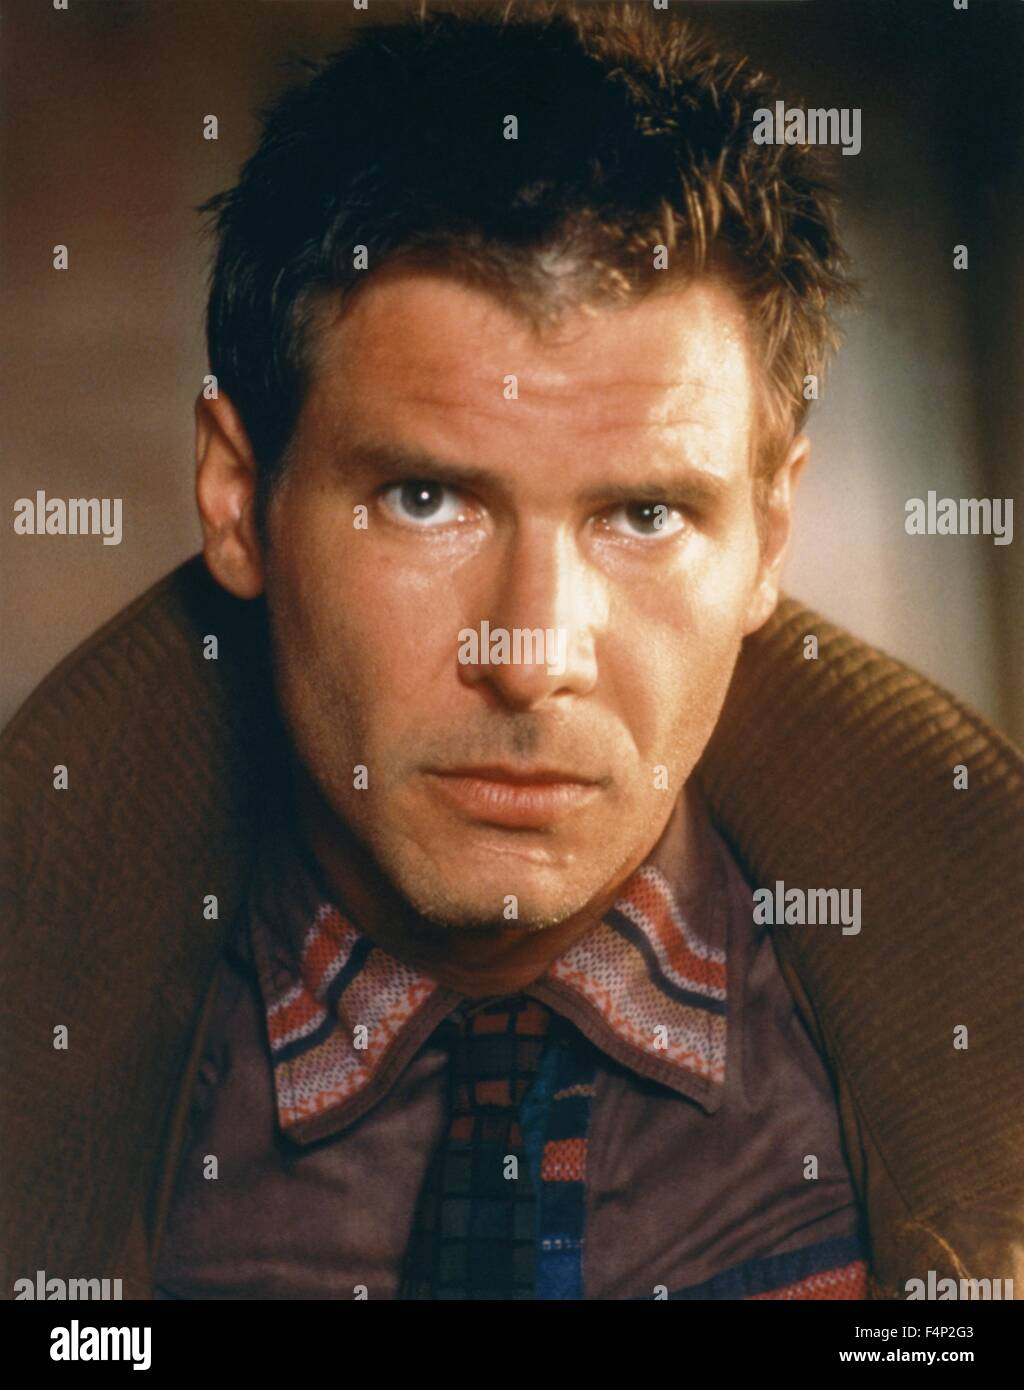 Harrison Ford / Blade Runner 1982 directed by Ridley Scott - Stock Image